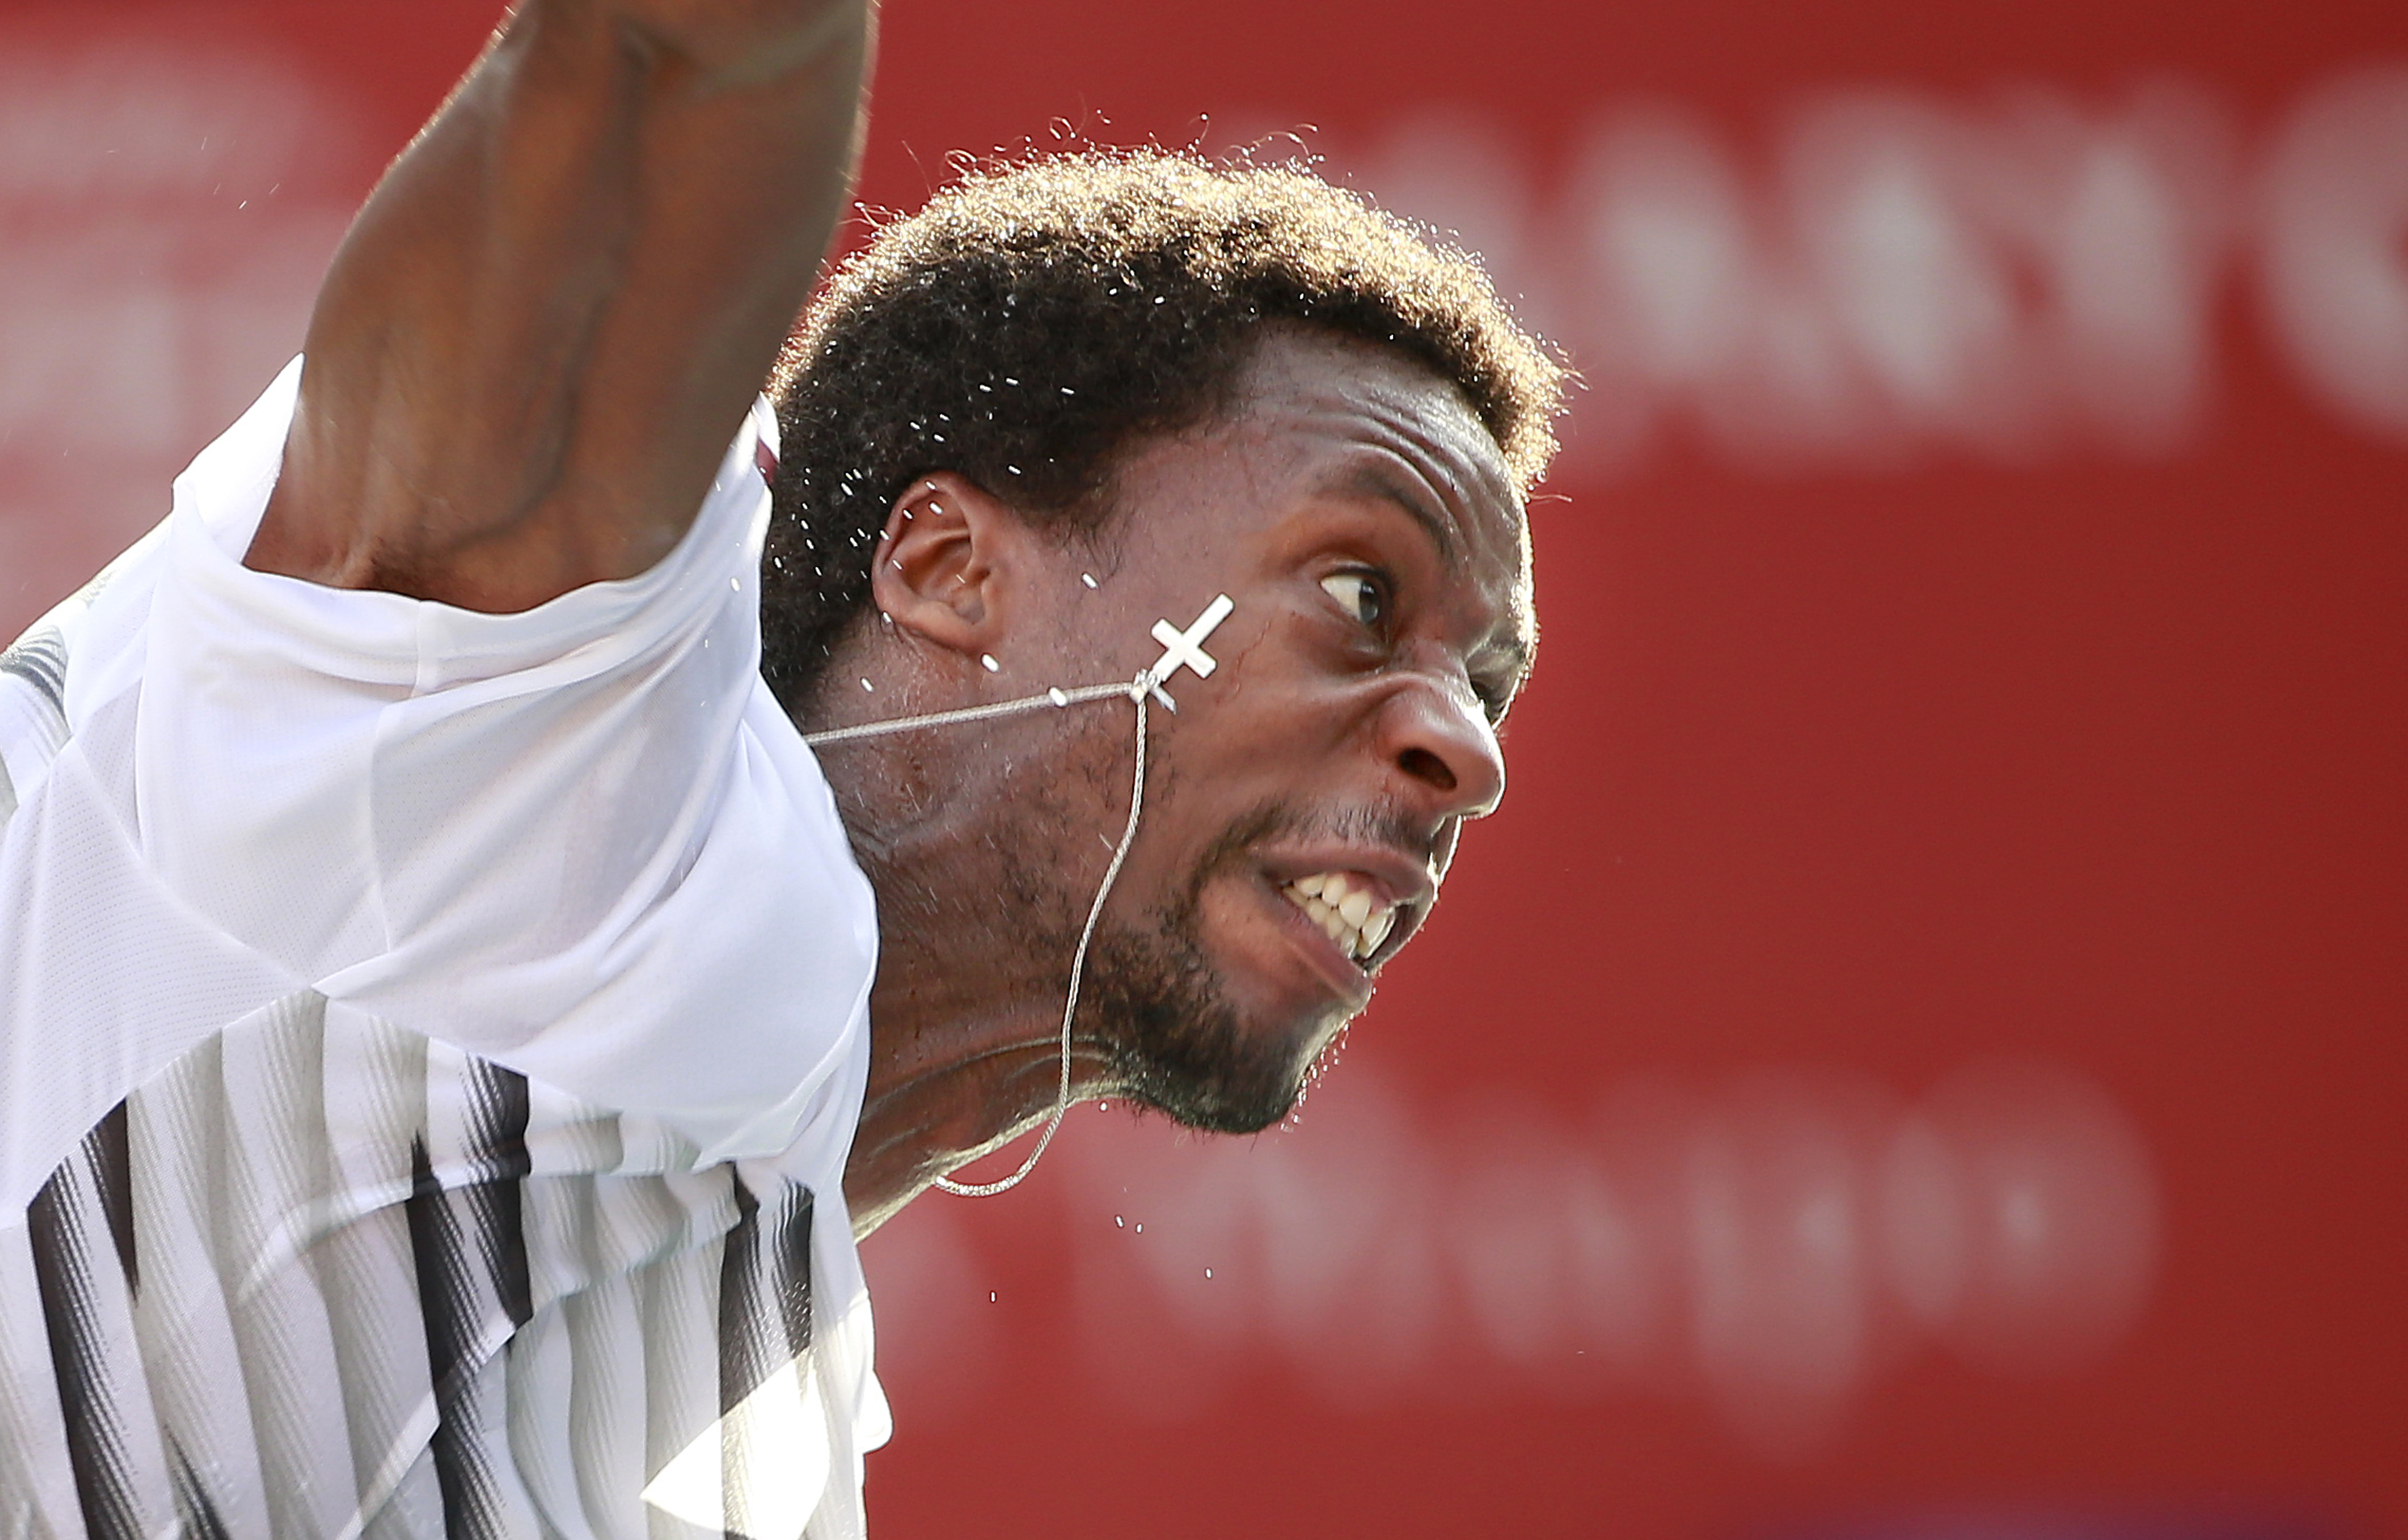 Gael Monfils of France serves to Gilles Simon of France during their second round match of the Japan Open tennis tournament in Tokyo, Thursday, Oct. 6, 2016. (AP Photo/Shizuo Kambayashi)